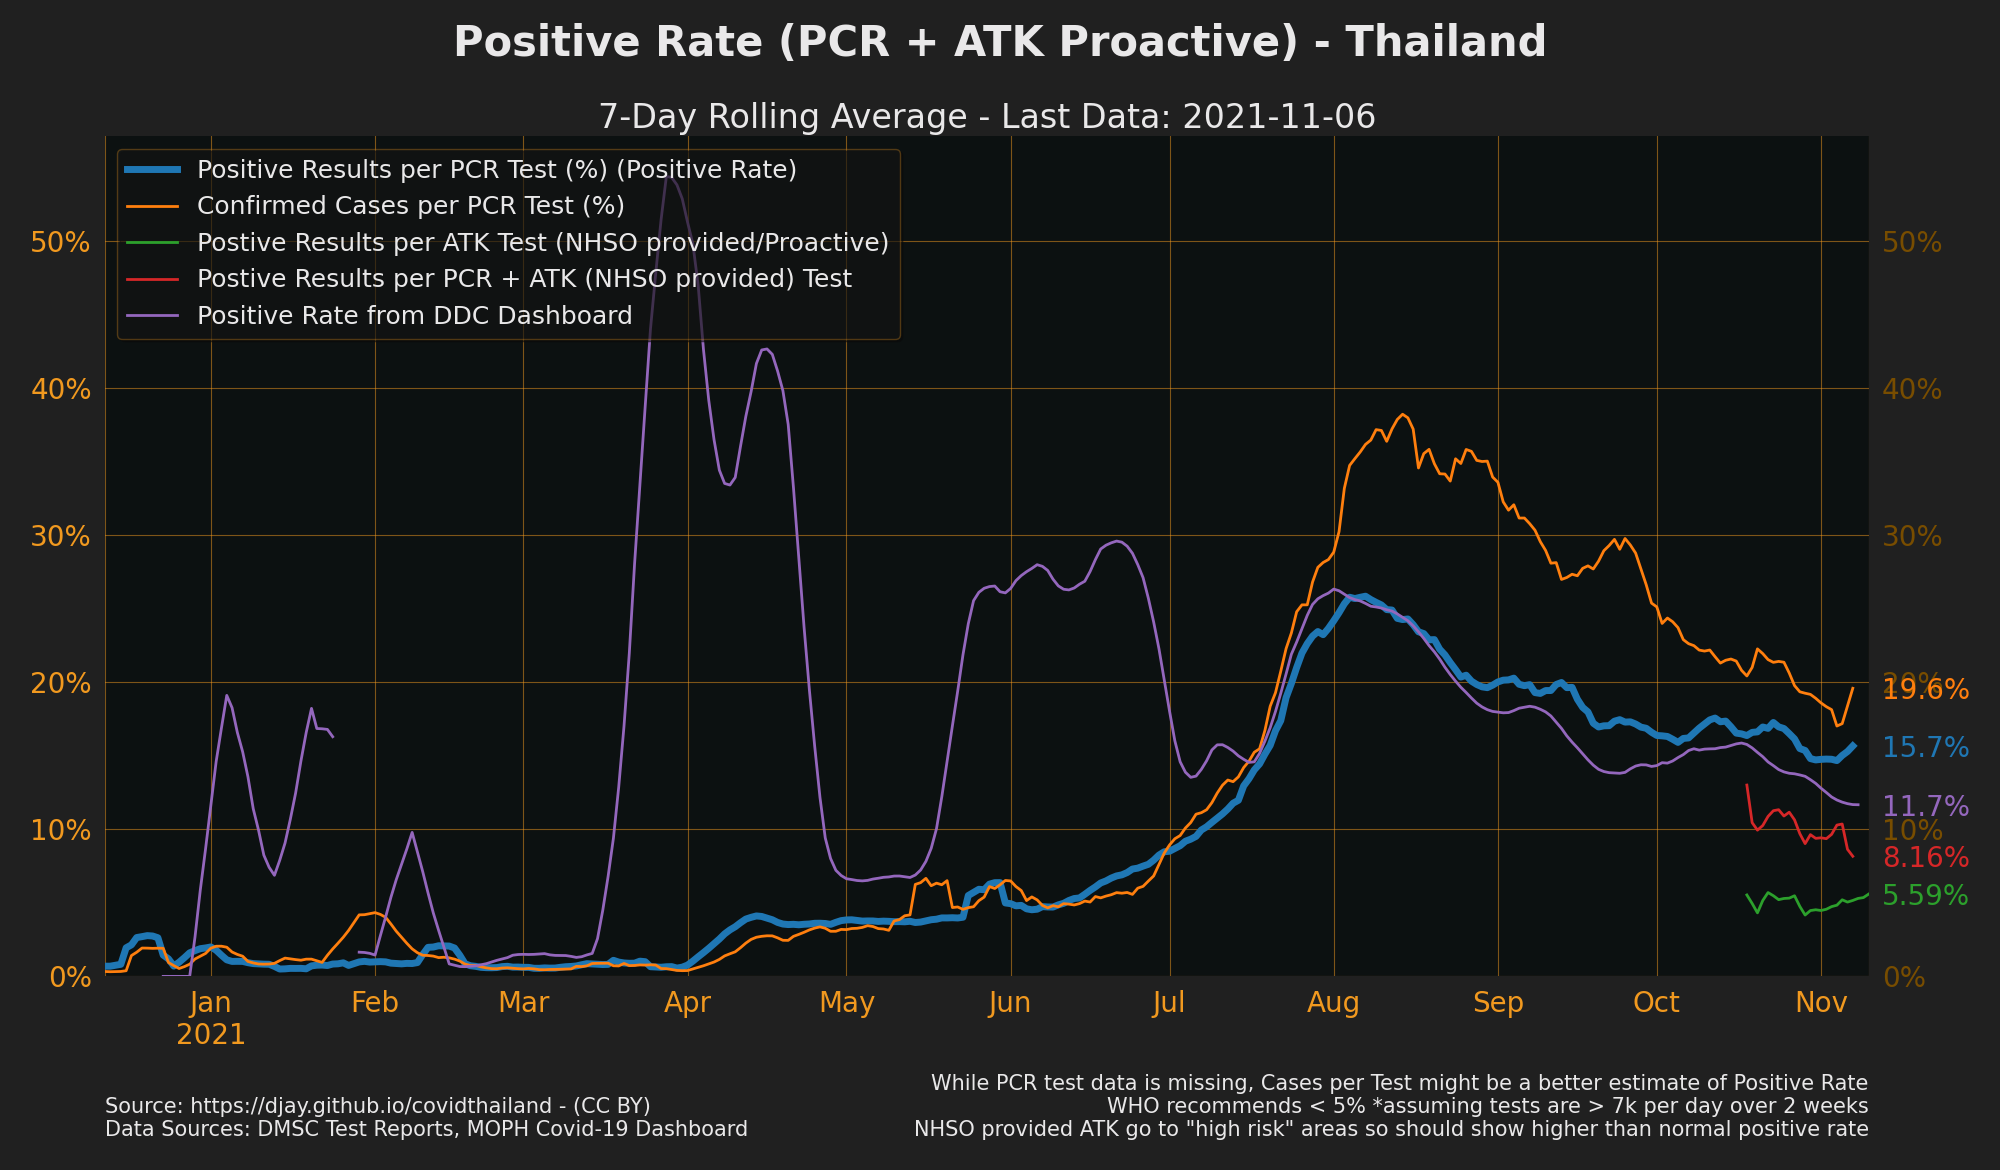 Positive Rate